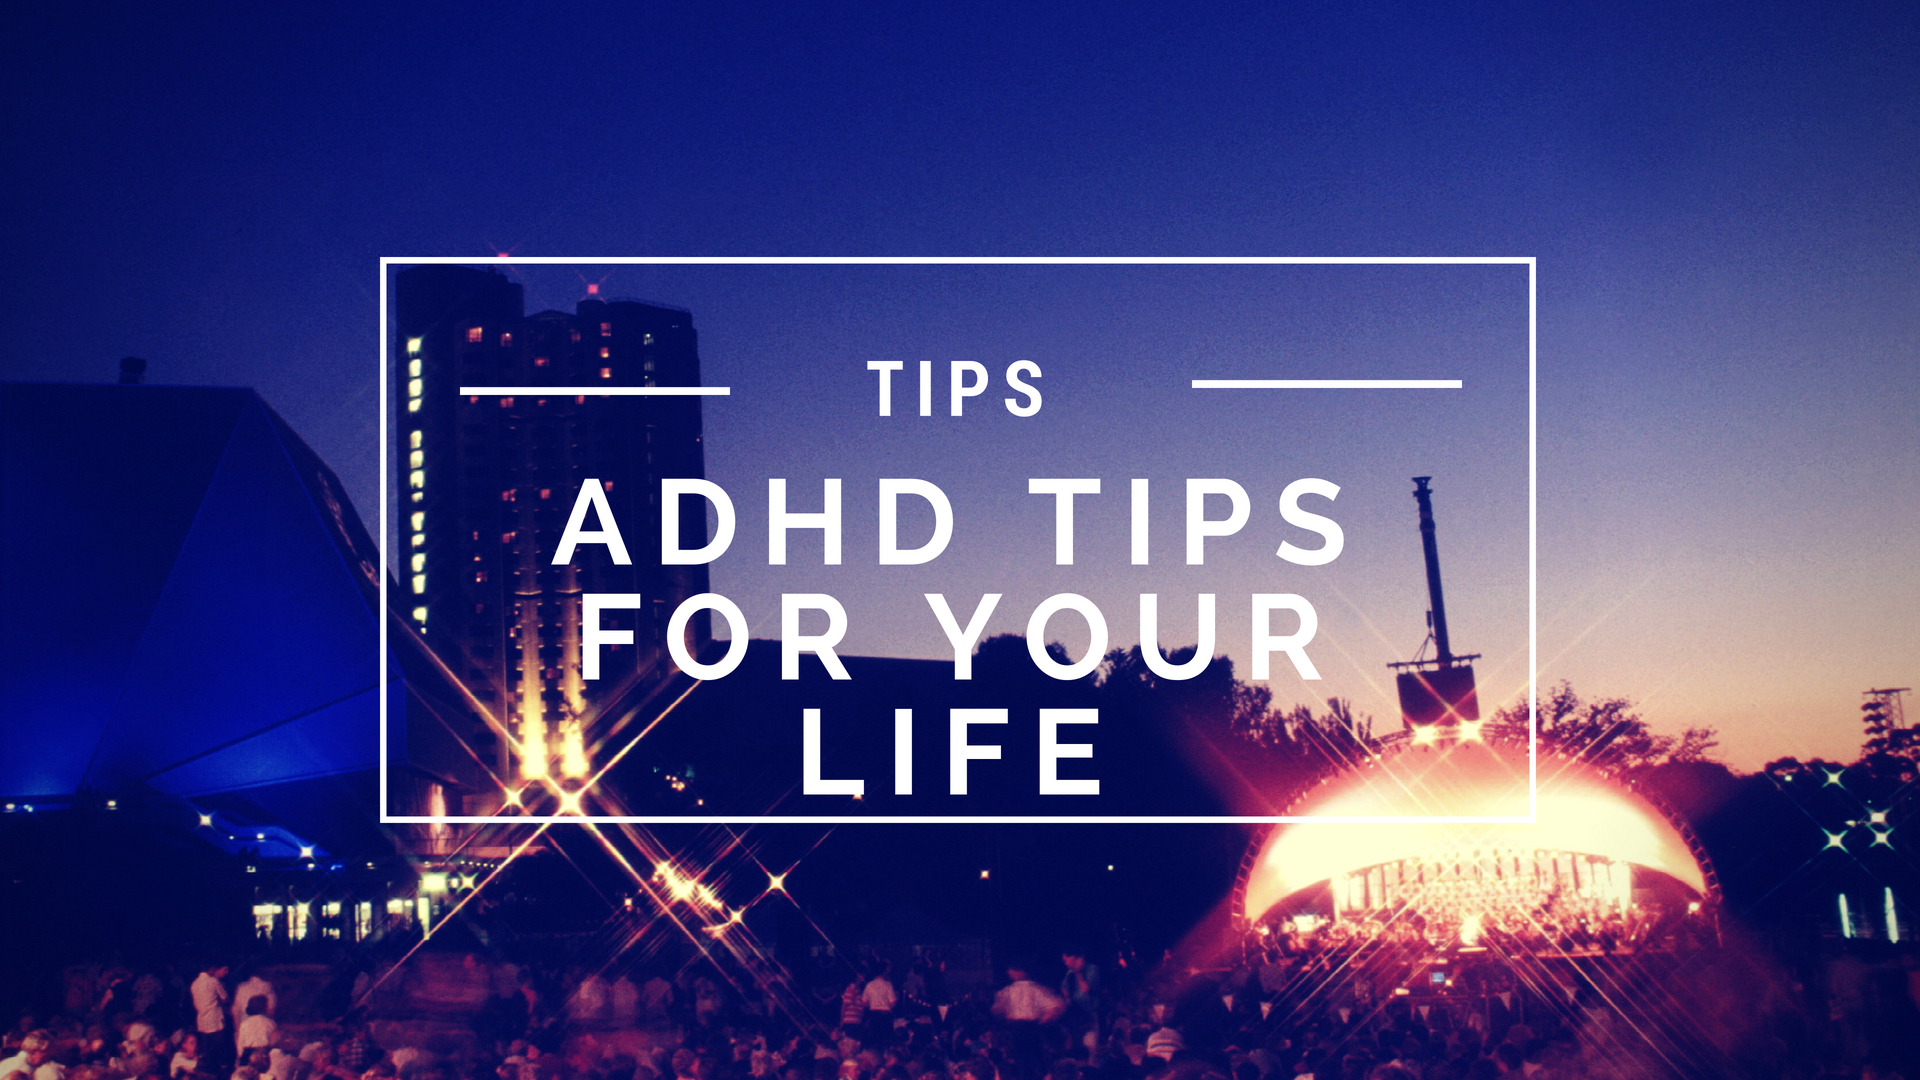 ADHD Tips for Your Life – The 15 Rules of Living With ADHD